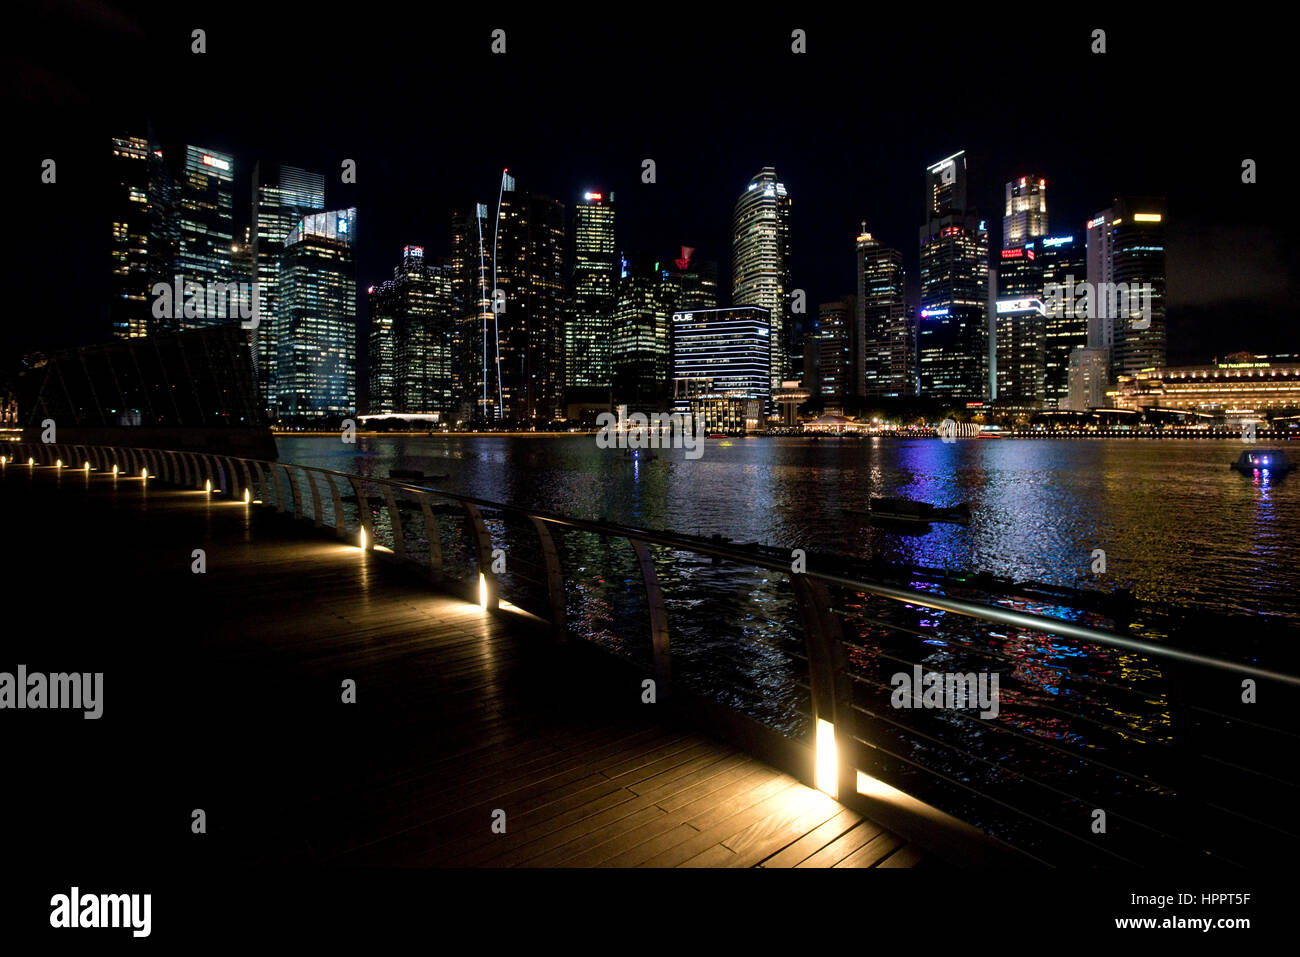 A cityscape view at night of the tower blocks and skyscrapers of the Central Business District (CBD) or Central - Stock Image